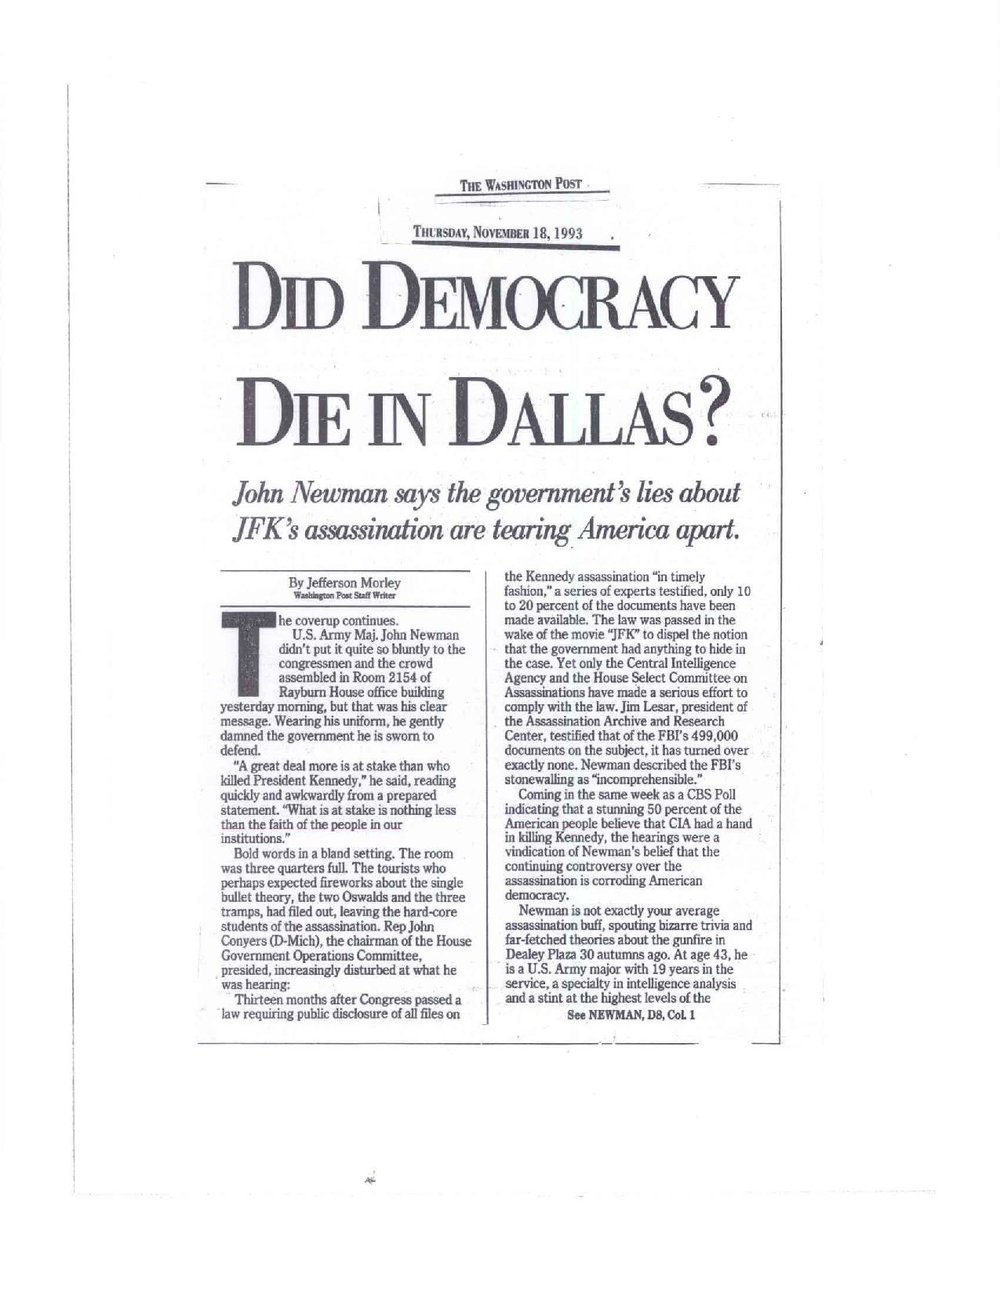 DID DEMOCRACY DIE IN DALLAS-1.jpg